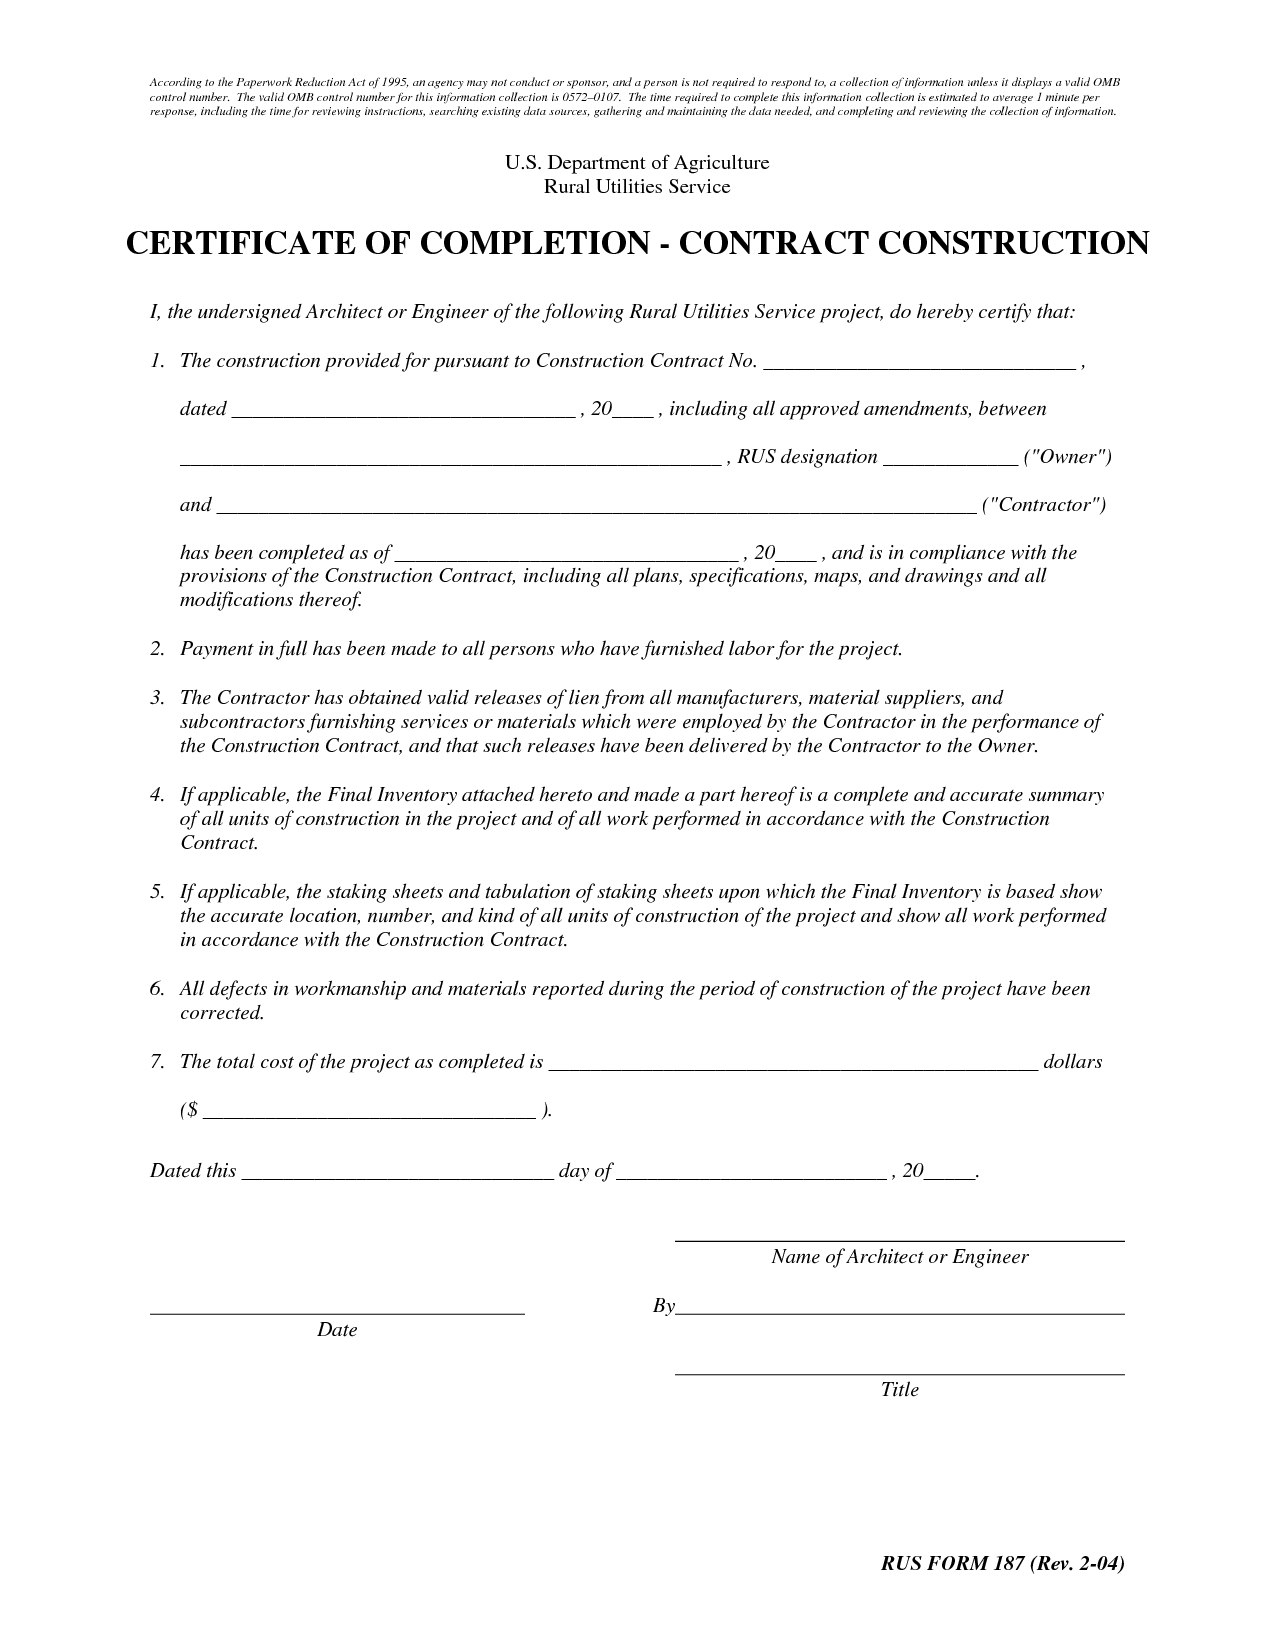 Contractor Certificate Of Completion  Freedomapkhere Throughout Certificate Of Completion Construction Templates